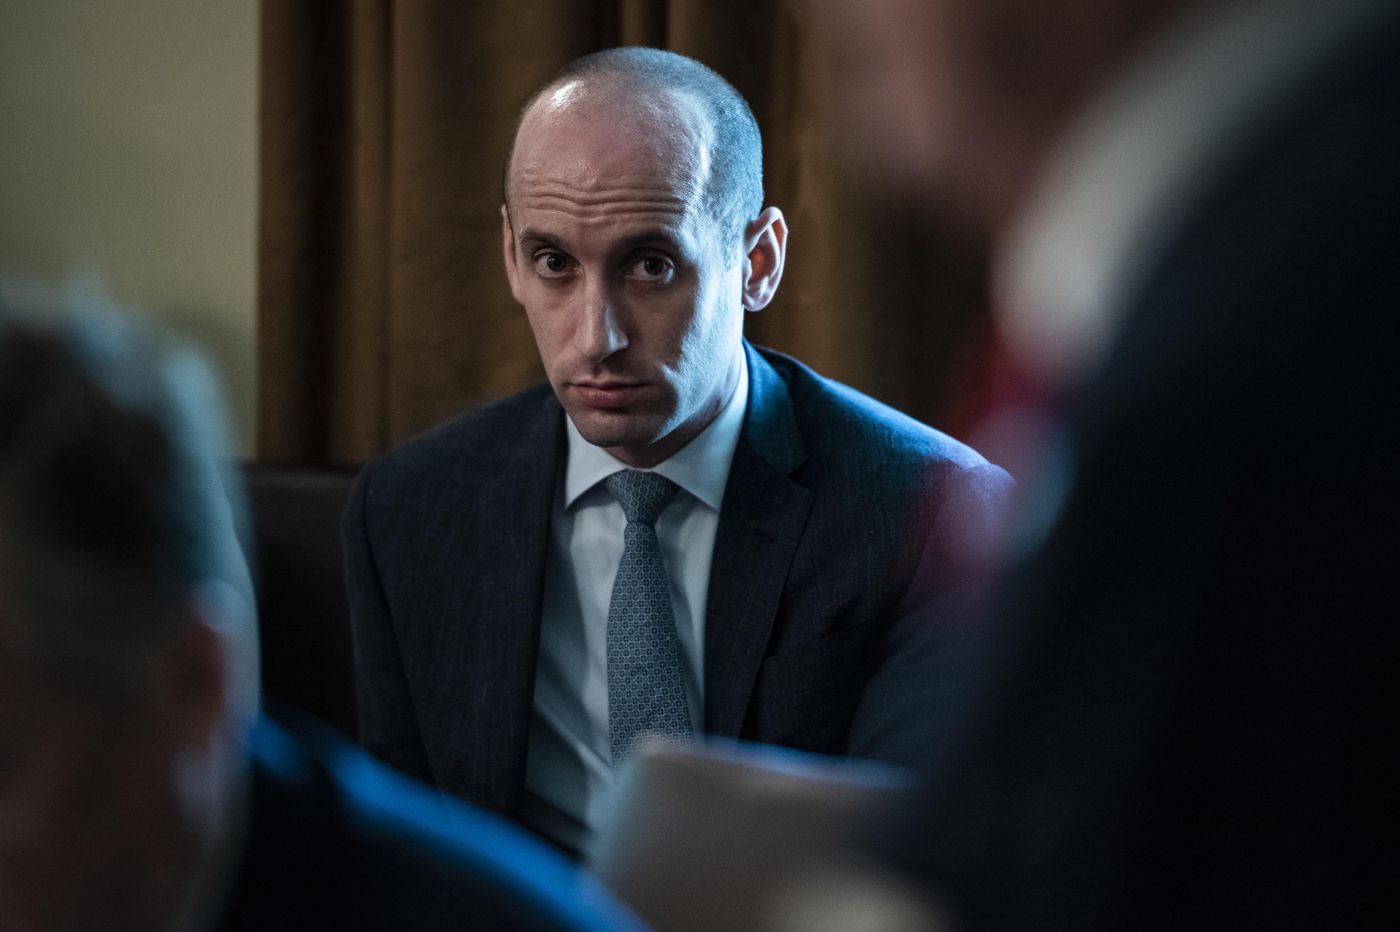 Democrats take aim at Stephen Miller as questions persist about 'sanctuary city' targeting